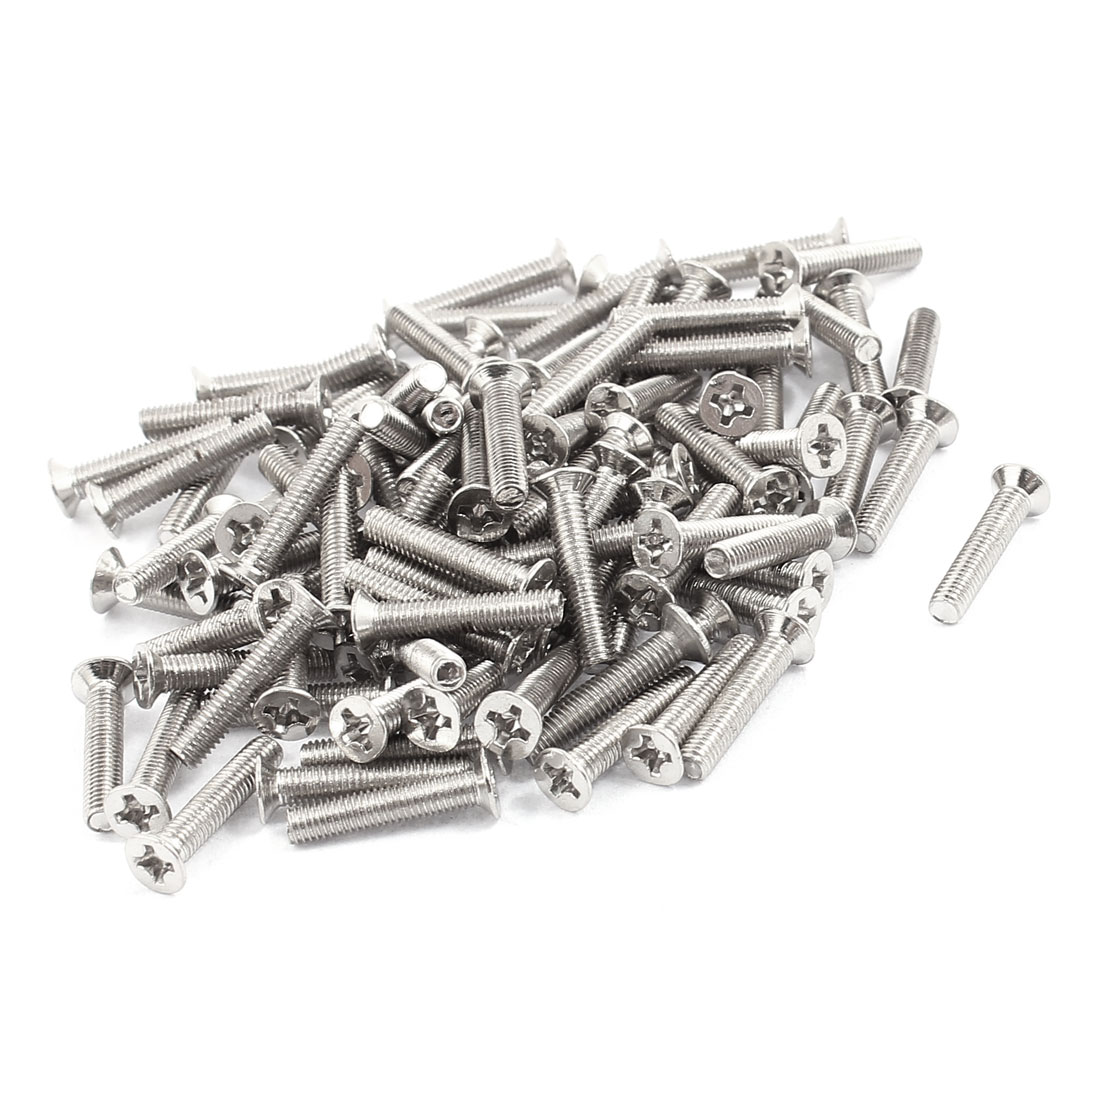 M3x16mm Stainless Steel Phillips Flat Head Countersunk Machine Screws Bolts 100pcs